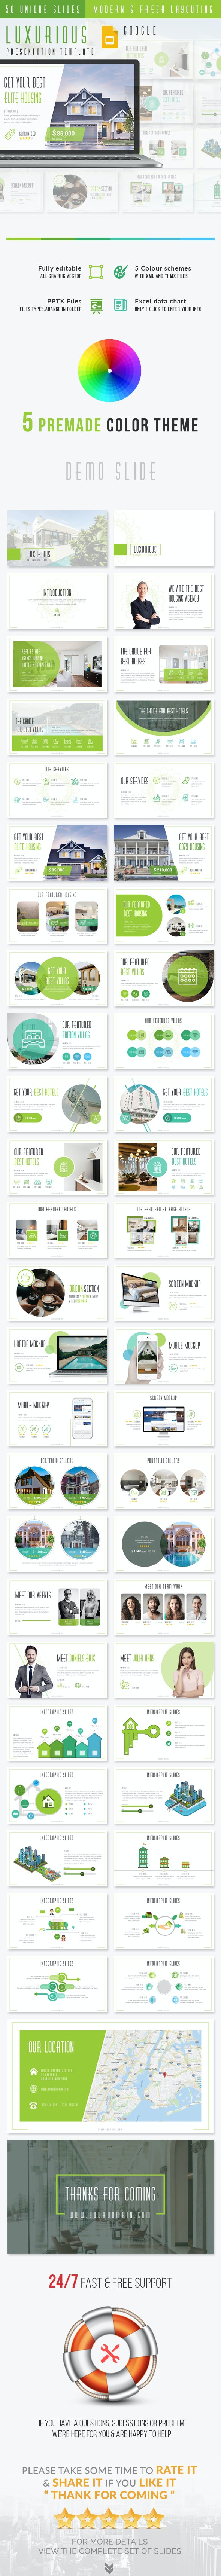 Luxurious - Real Estate Agency Google Slides Presentation Template - Google Slides Presentation Templates